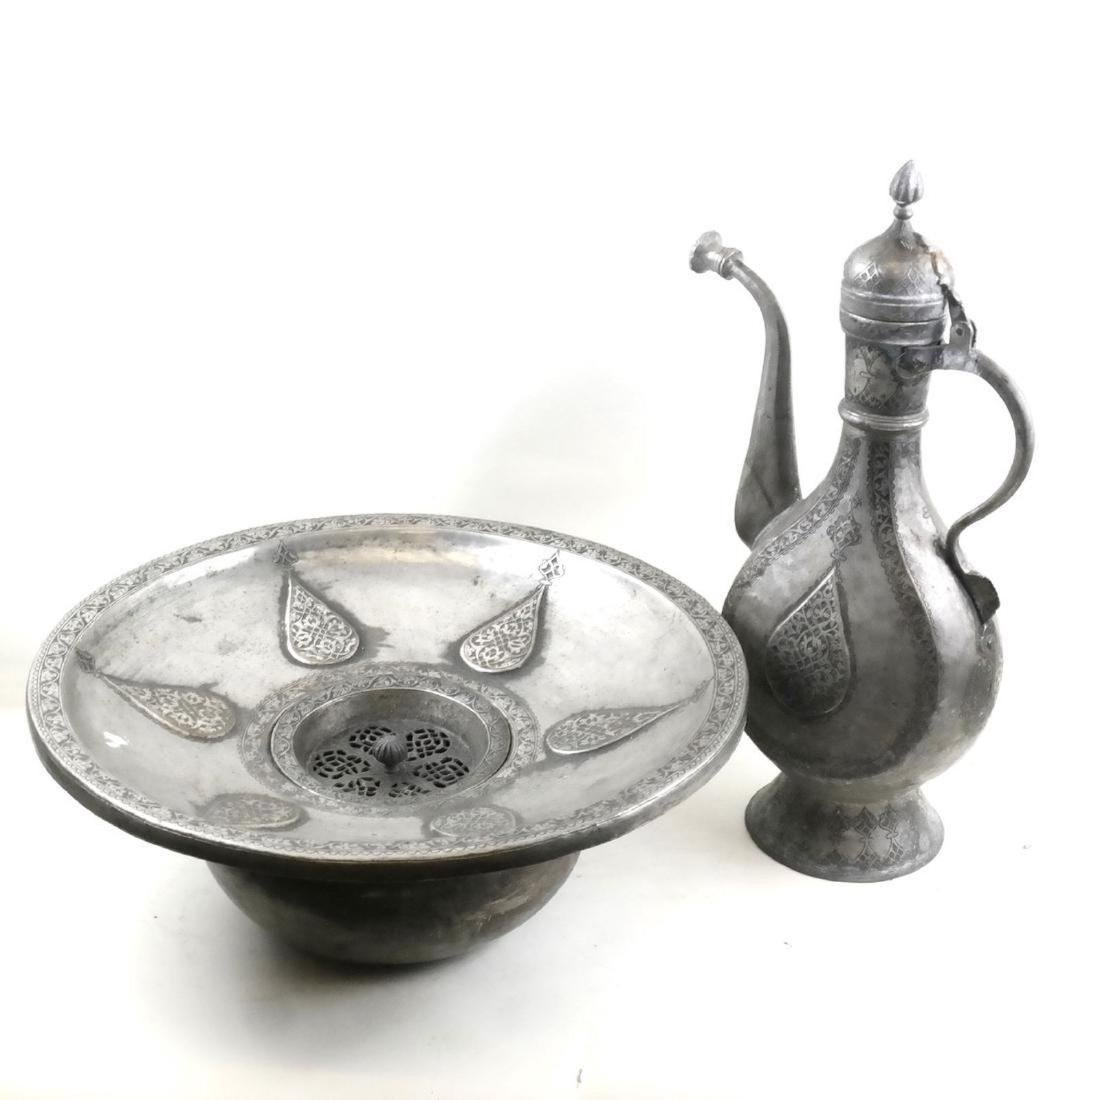 Antique Islamic Incised Ewer And Bowl